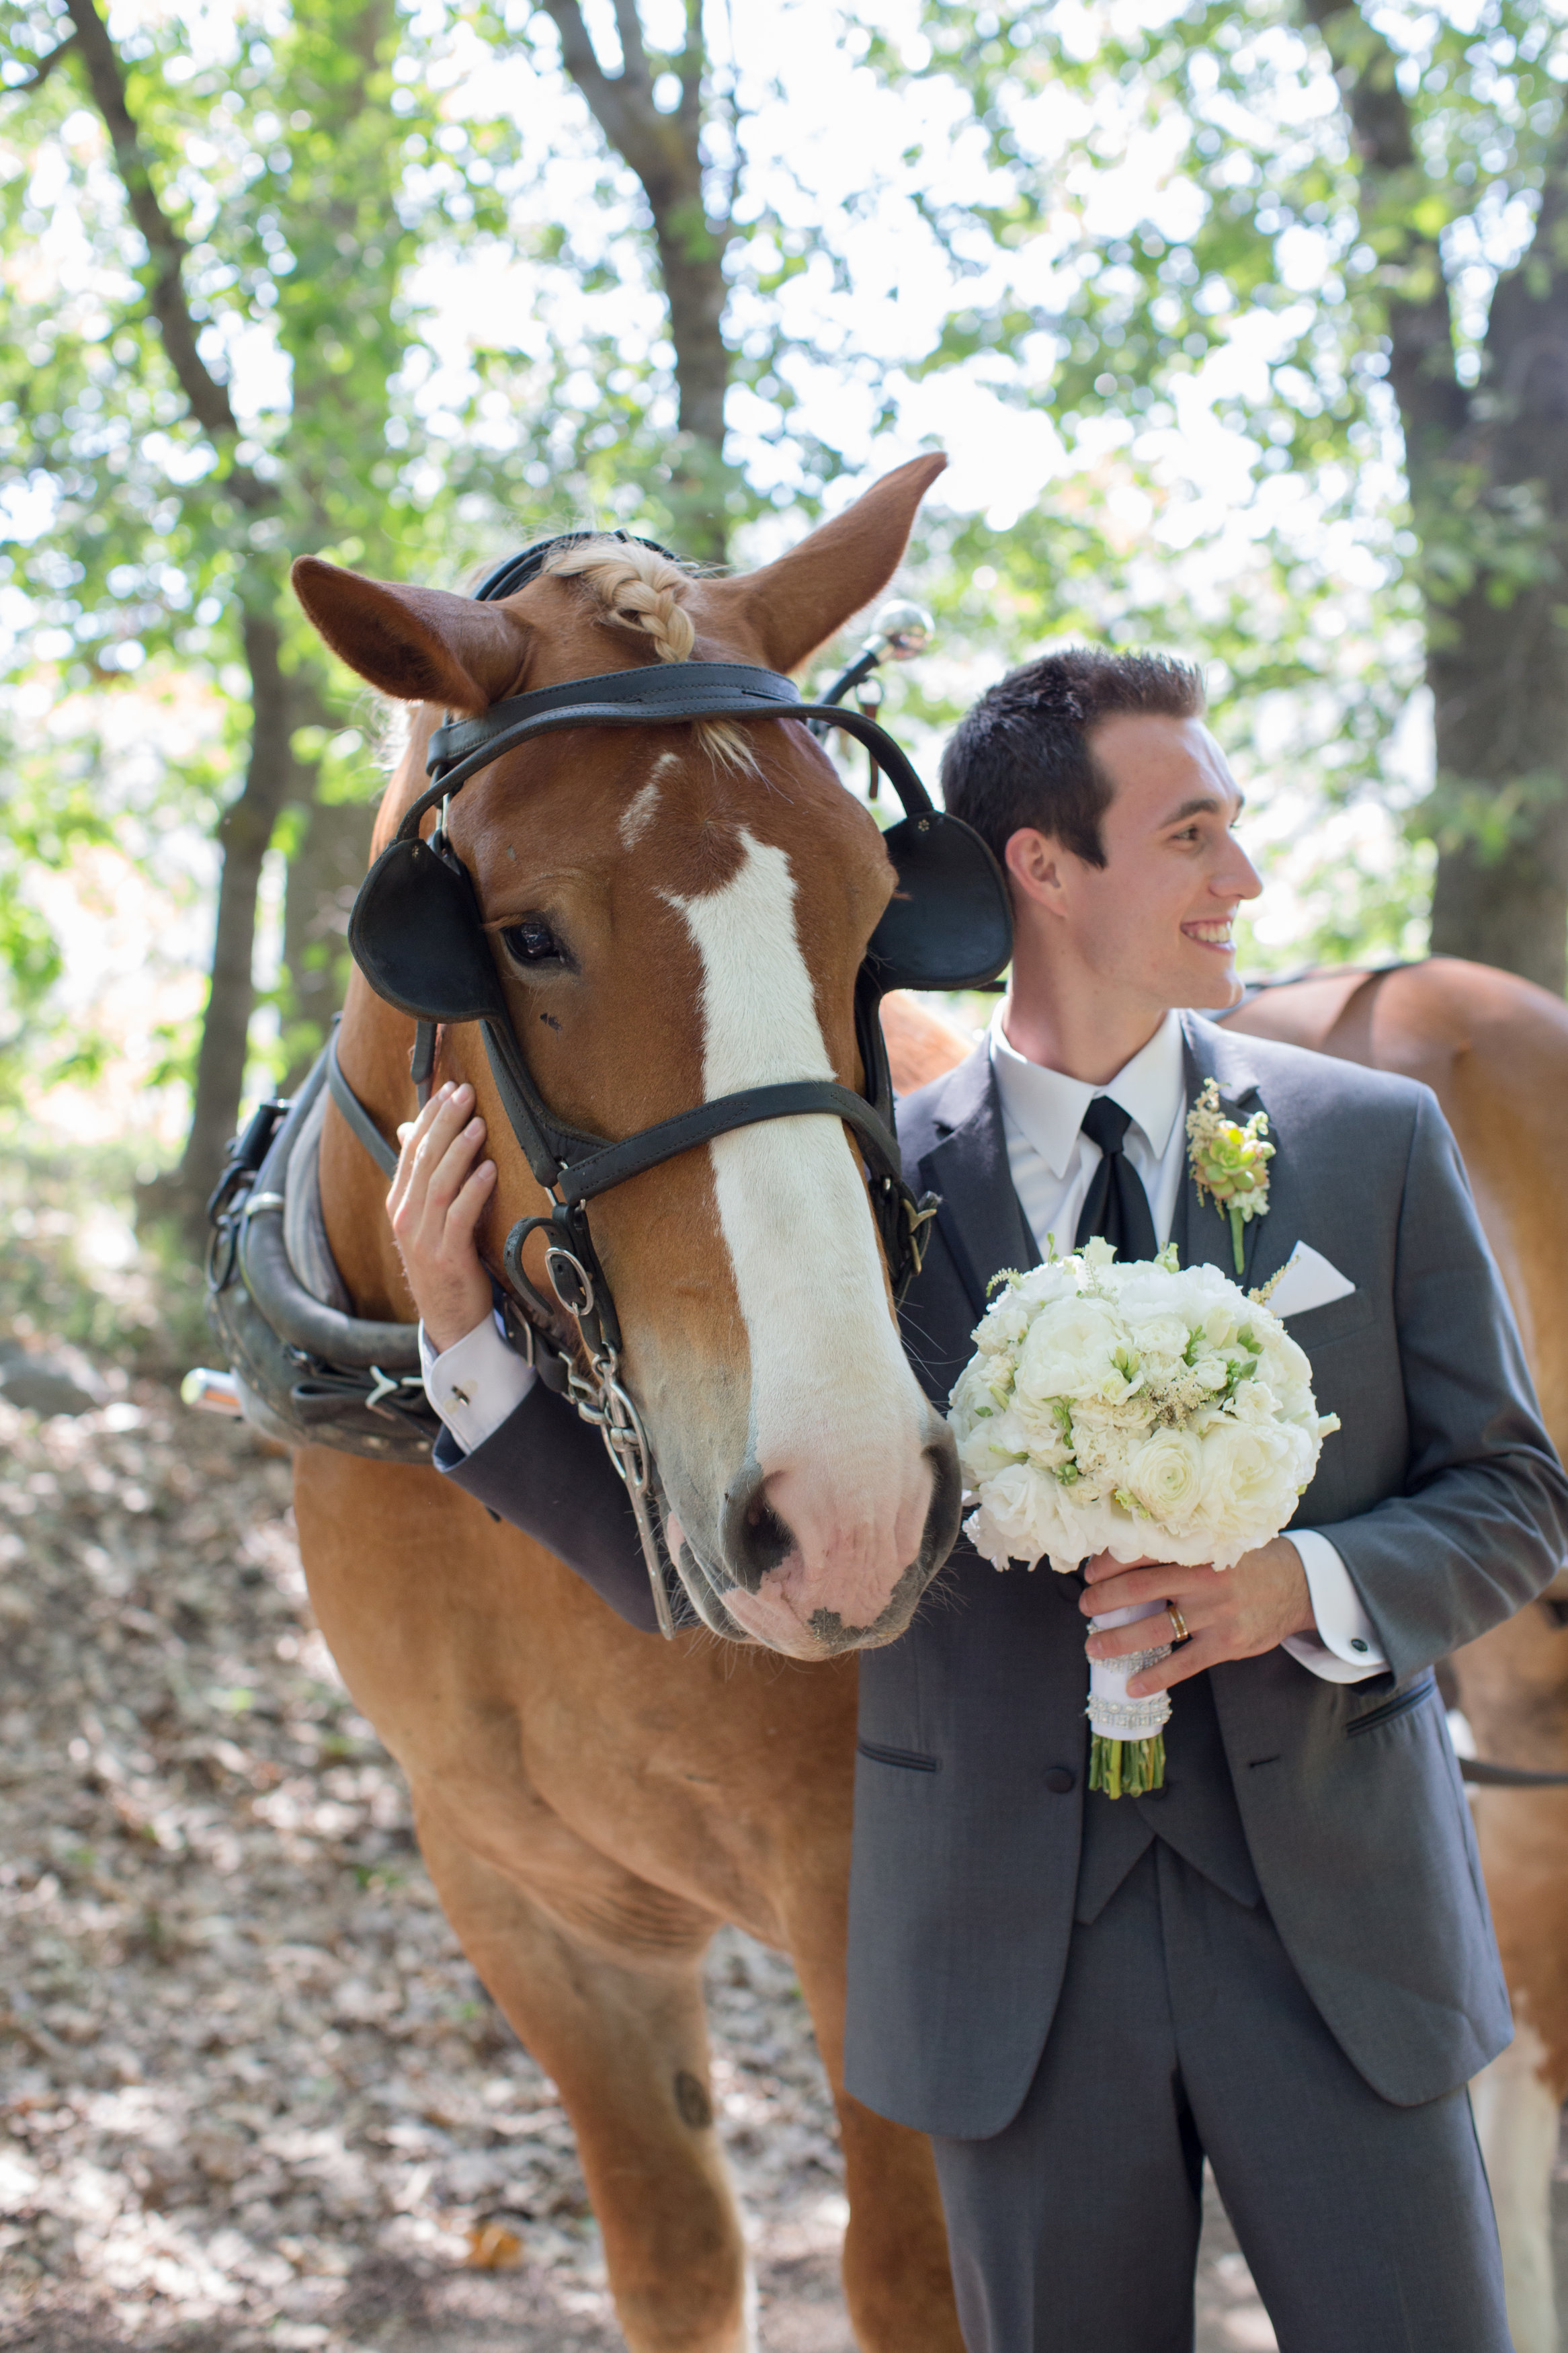 Bethy and Max w gallery-room & Horse.jpg